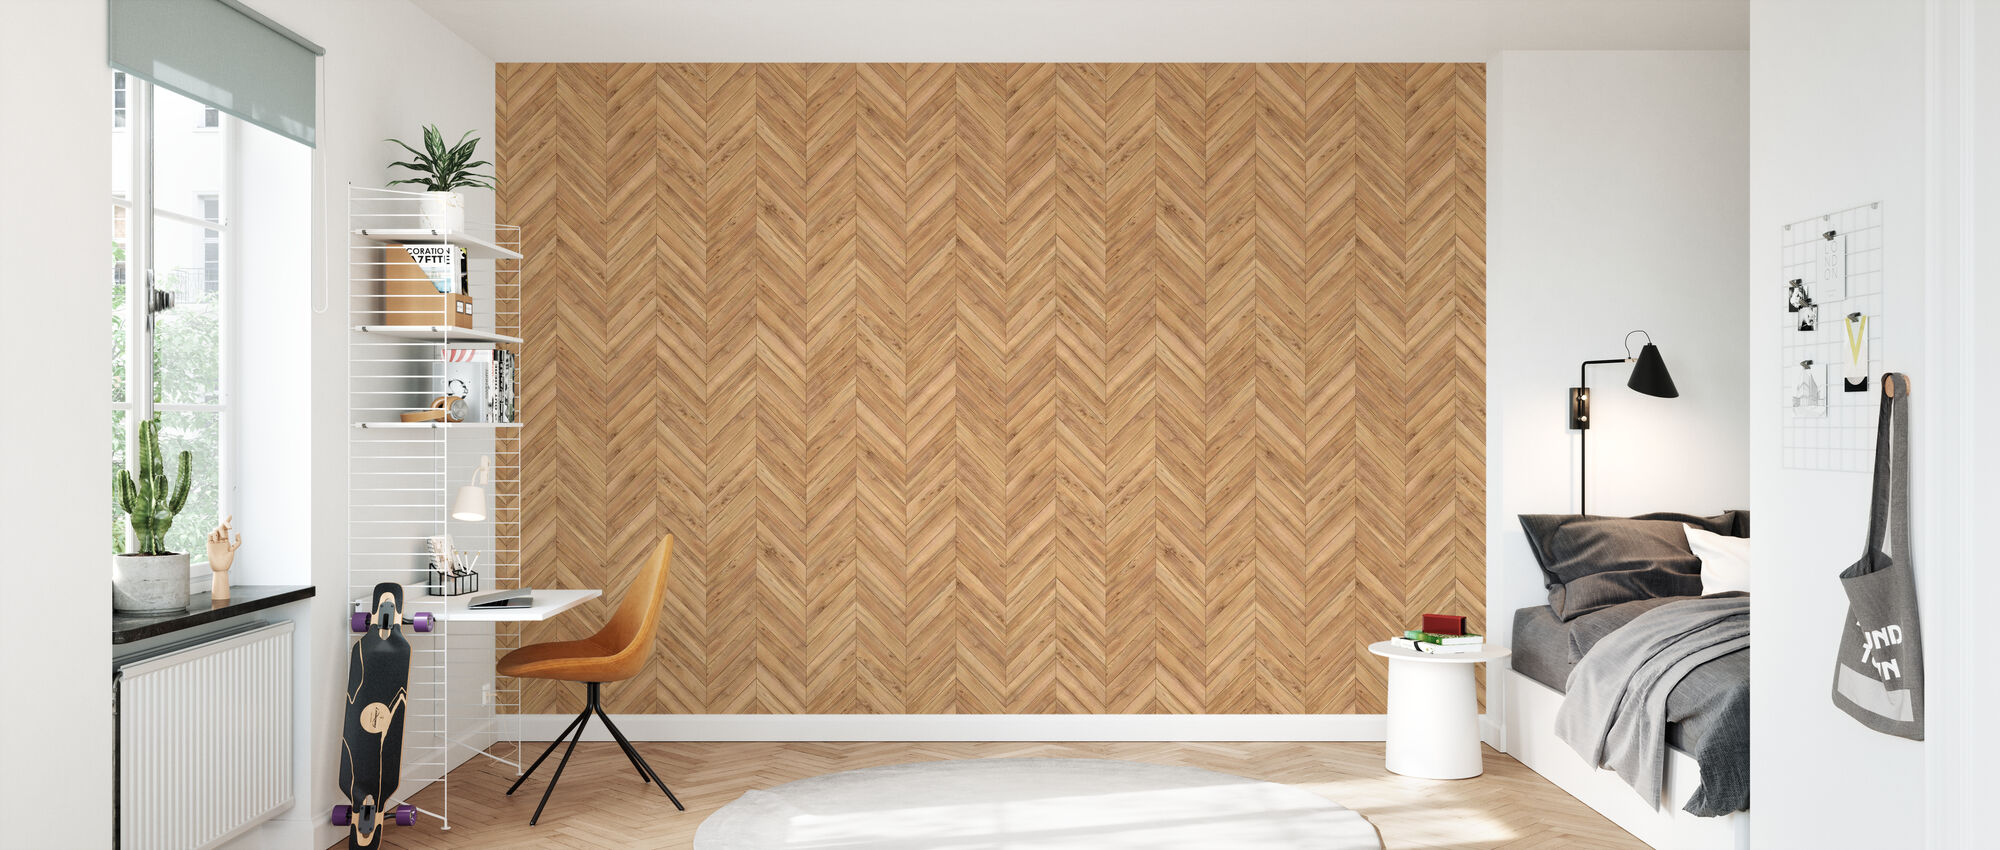 Chevron Parquet - Behang - Kinderkamer